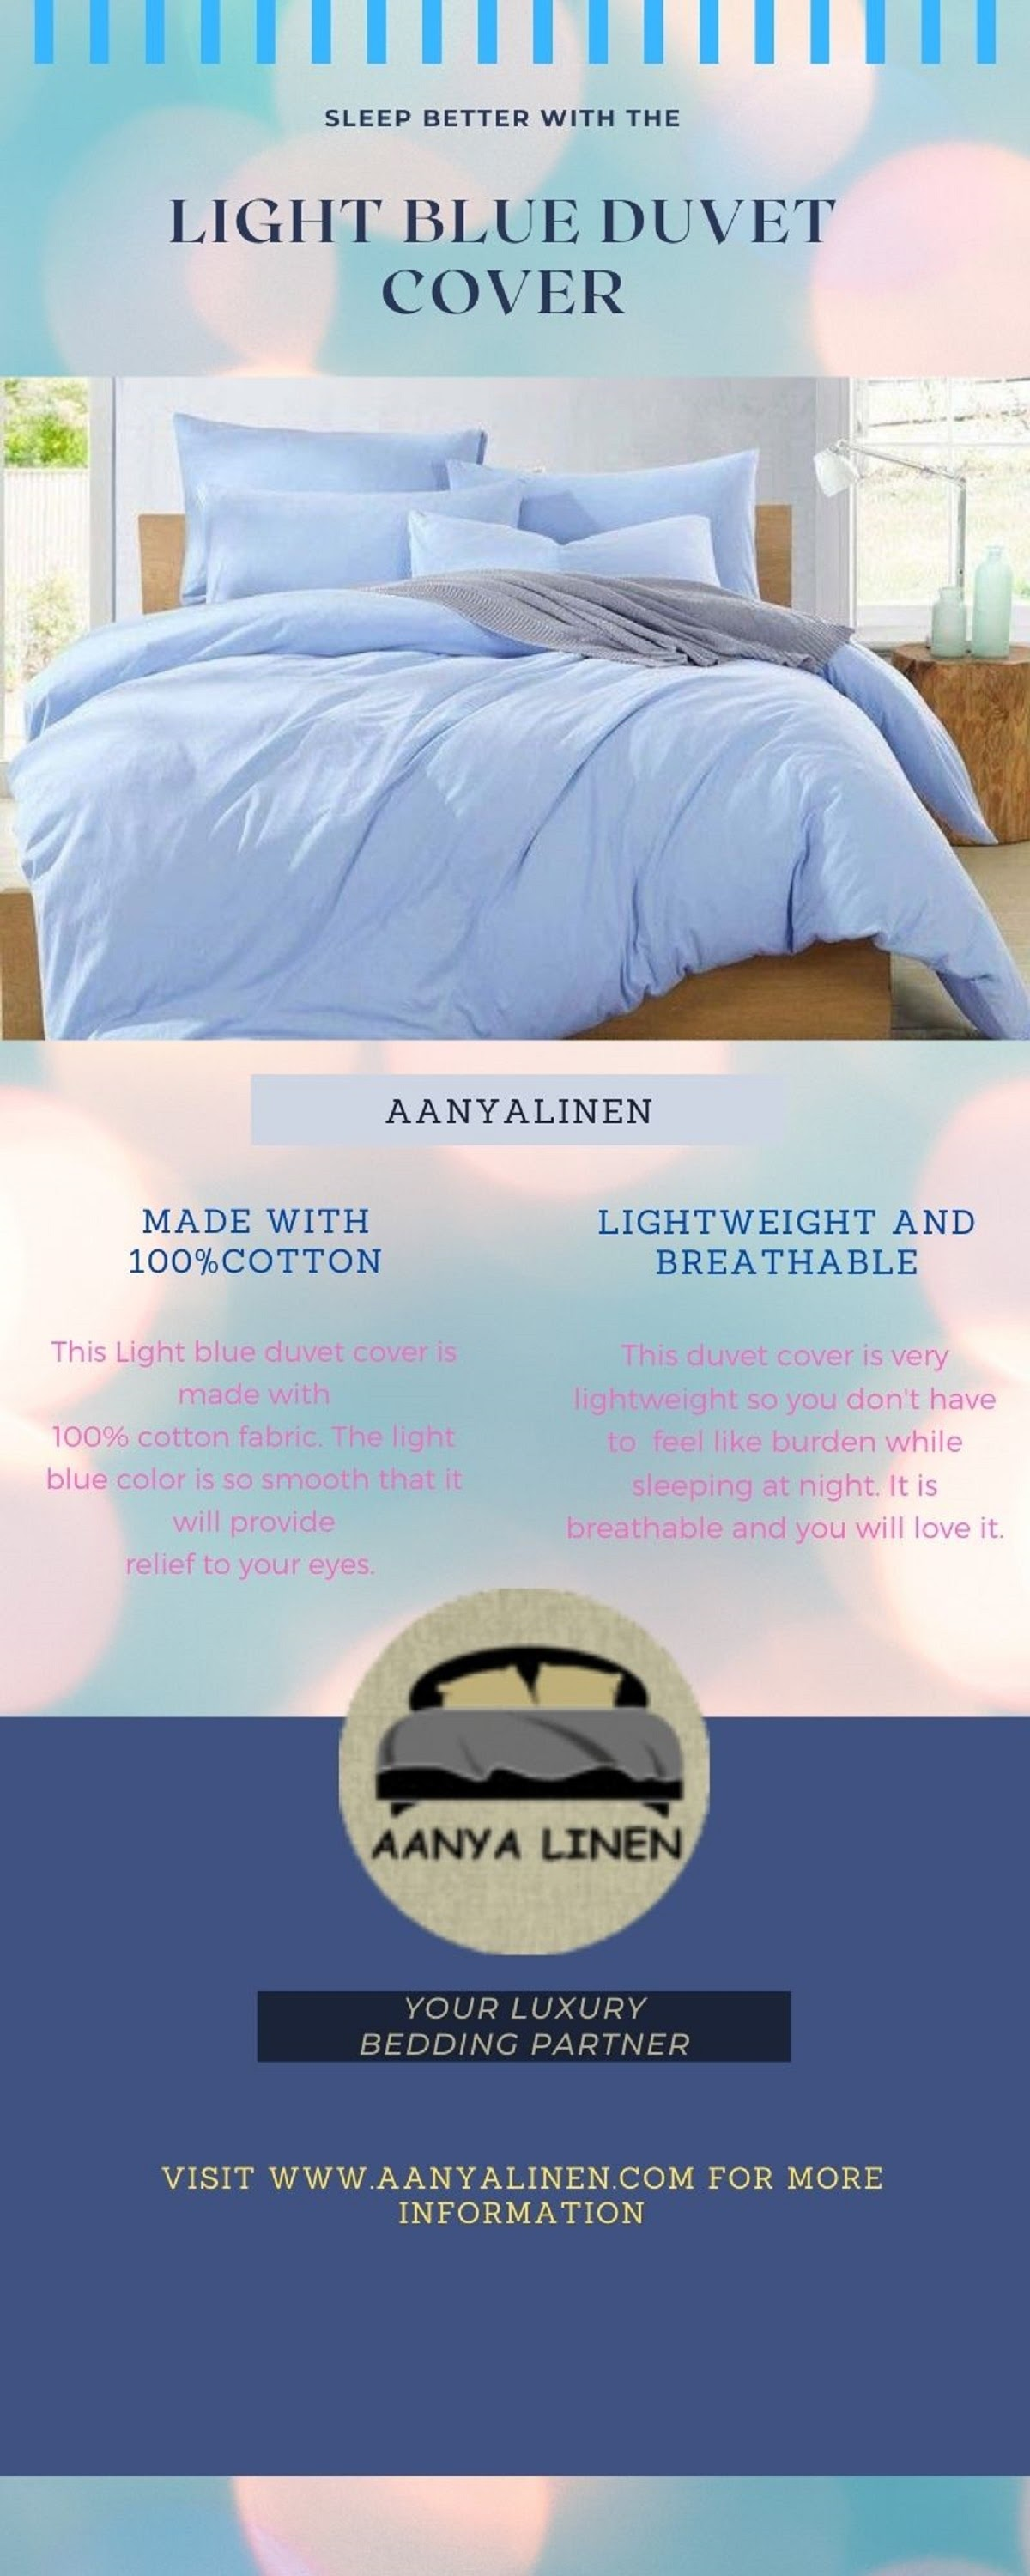 beautiful-light-blue-duvet-cover-infographic